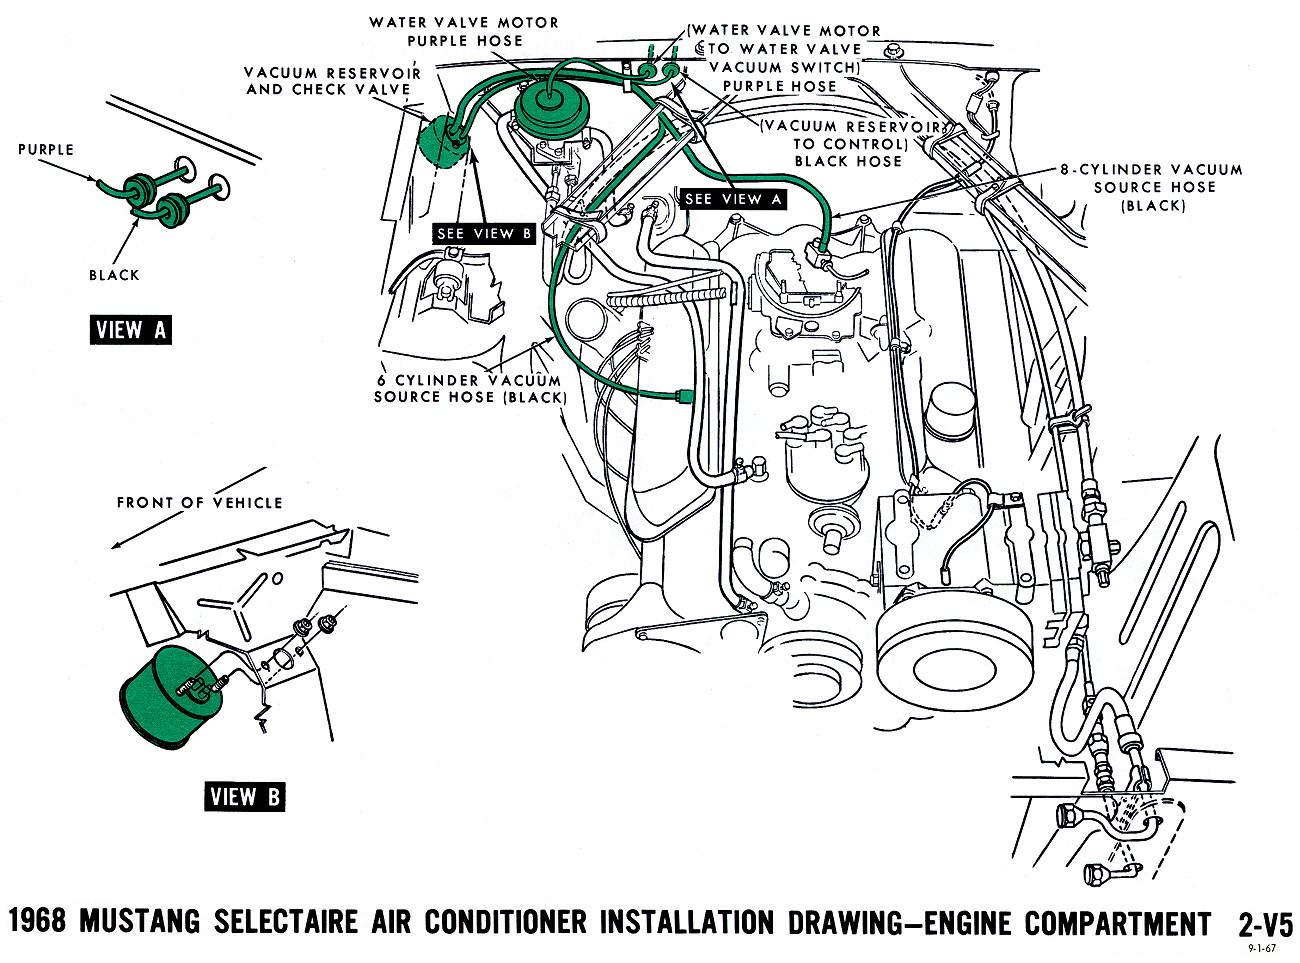 small resolution of 68 mustang vacuum diagram wiring diagram technic ford mustang vacuum line diagram in addition 1966 ford mustang